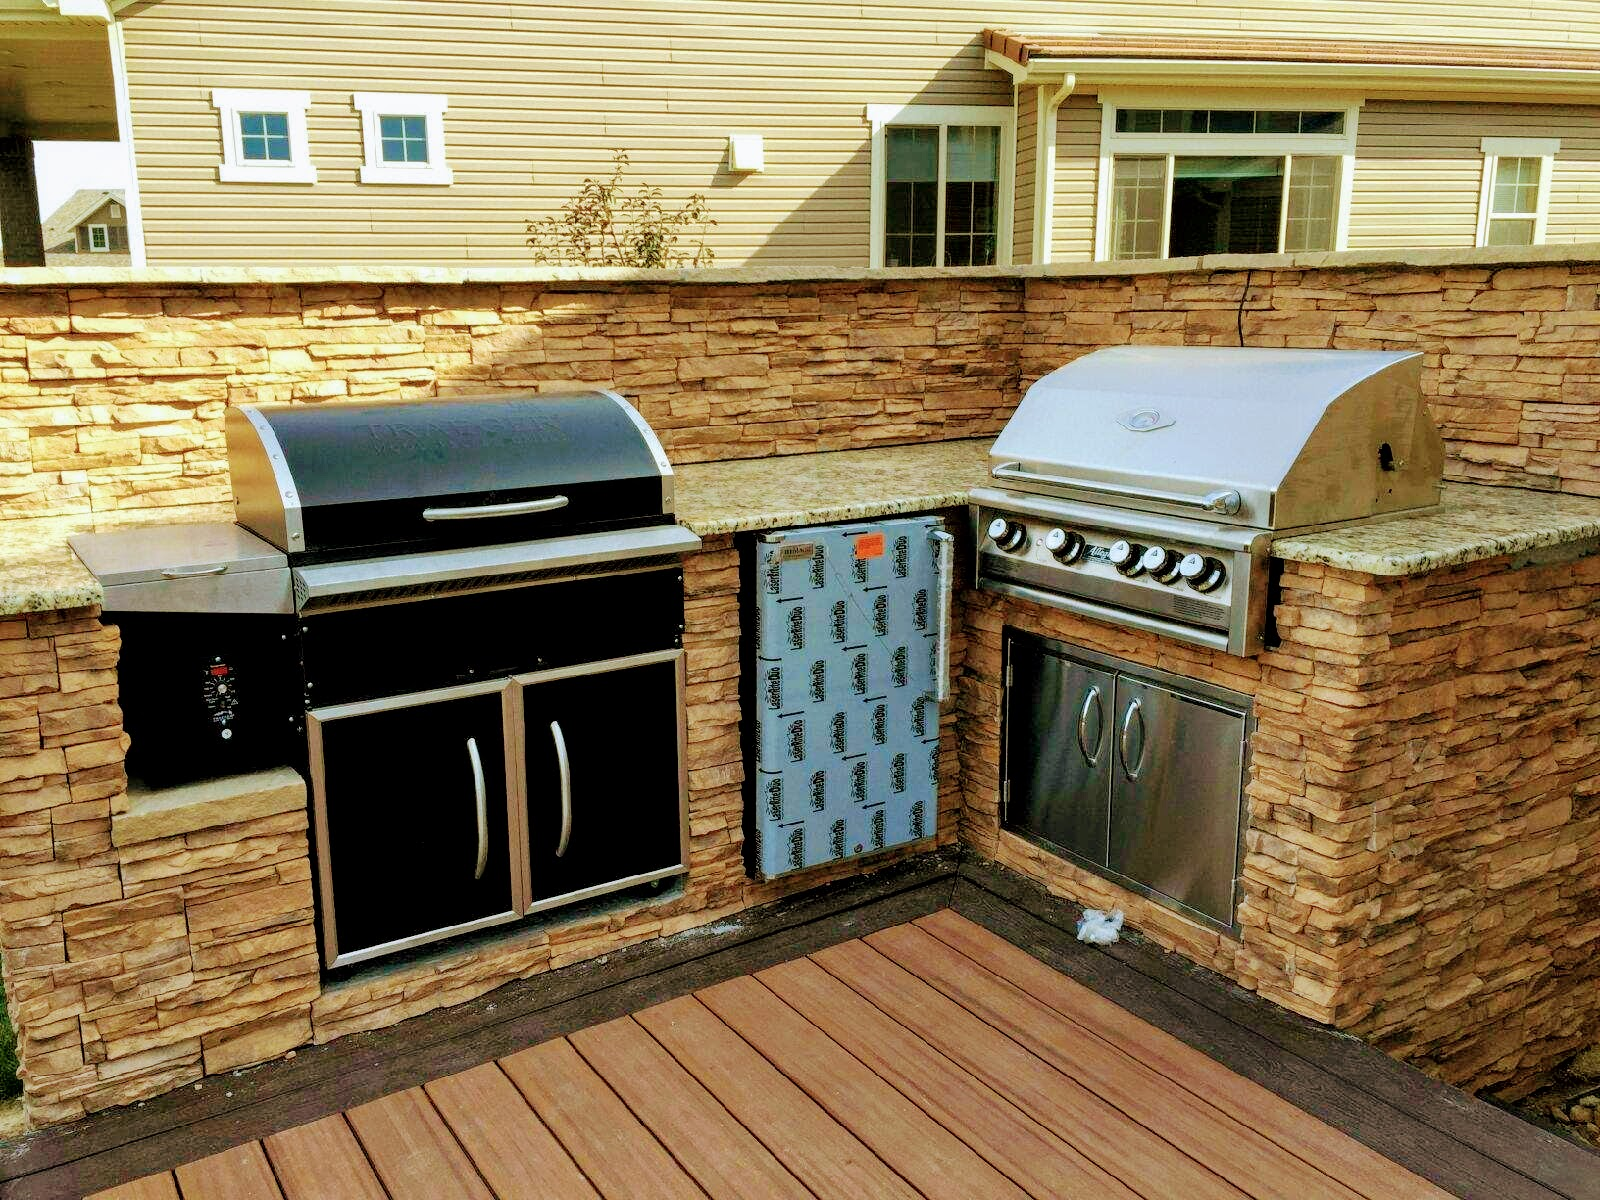 Built In Smoker Outdoor Kitchen Affordable Trendy Home Design .